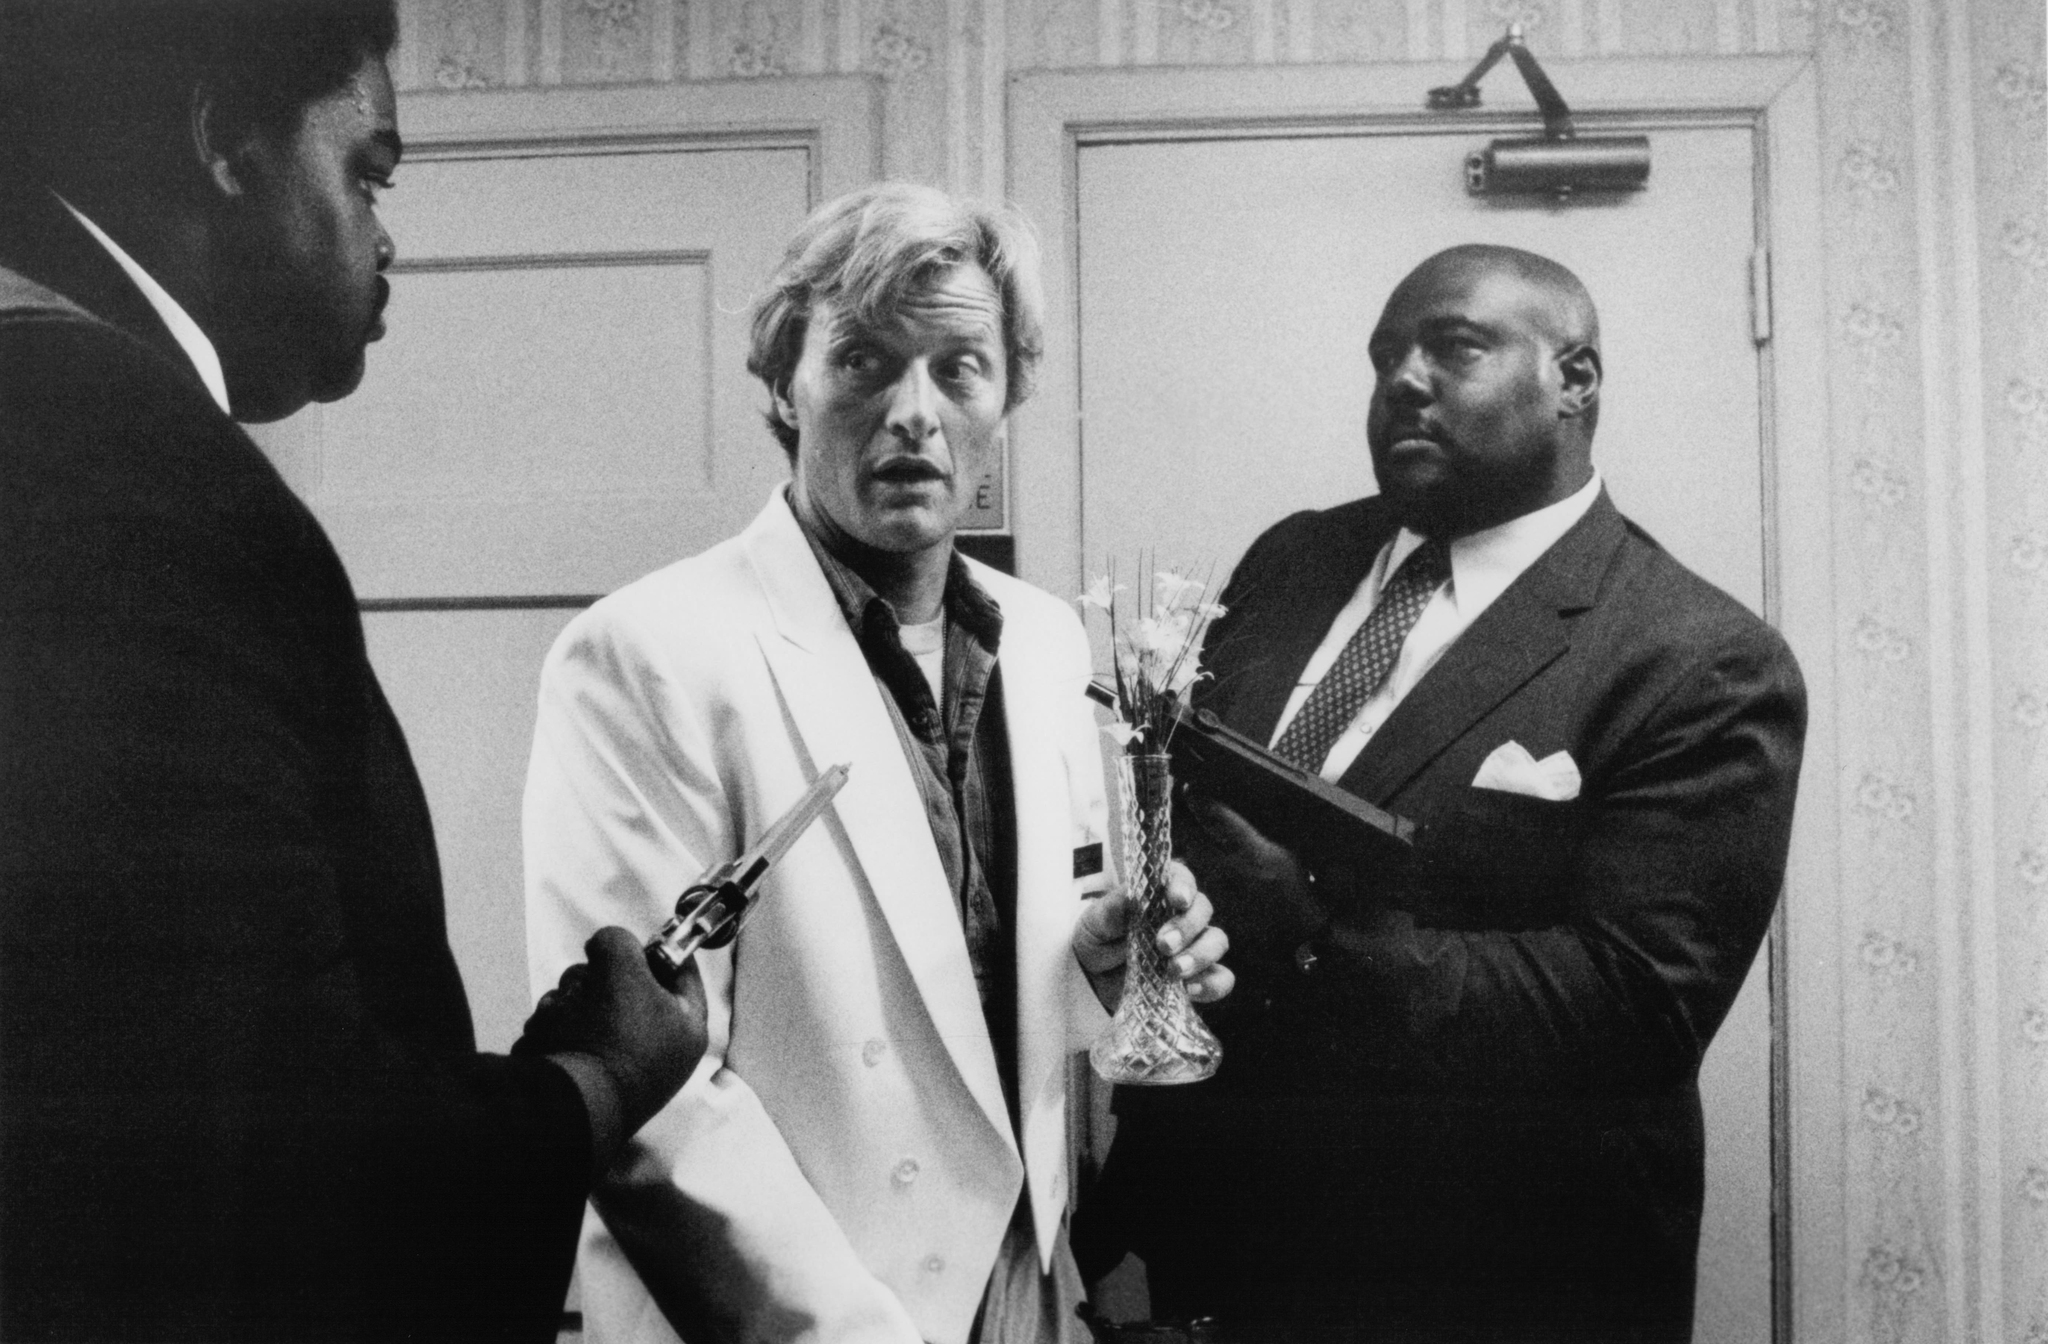 Rutger Hauer, Ernest Mack, and Linwood Walker in Blind Fury (1989)